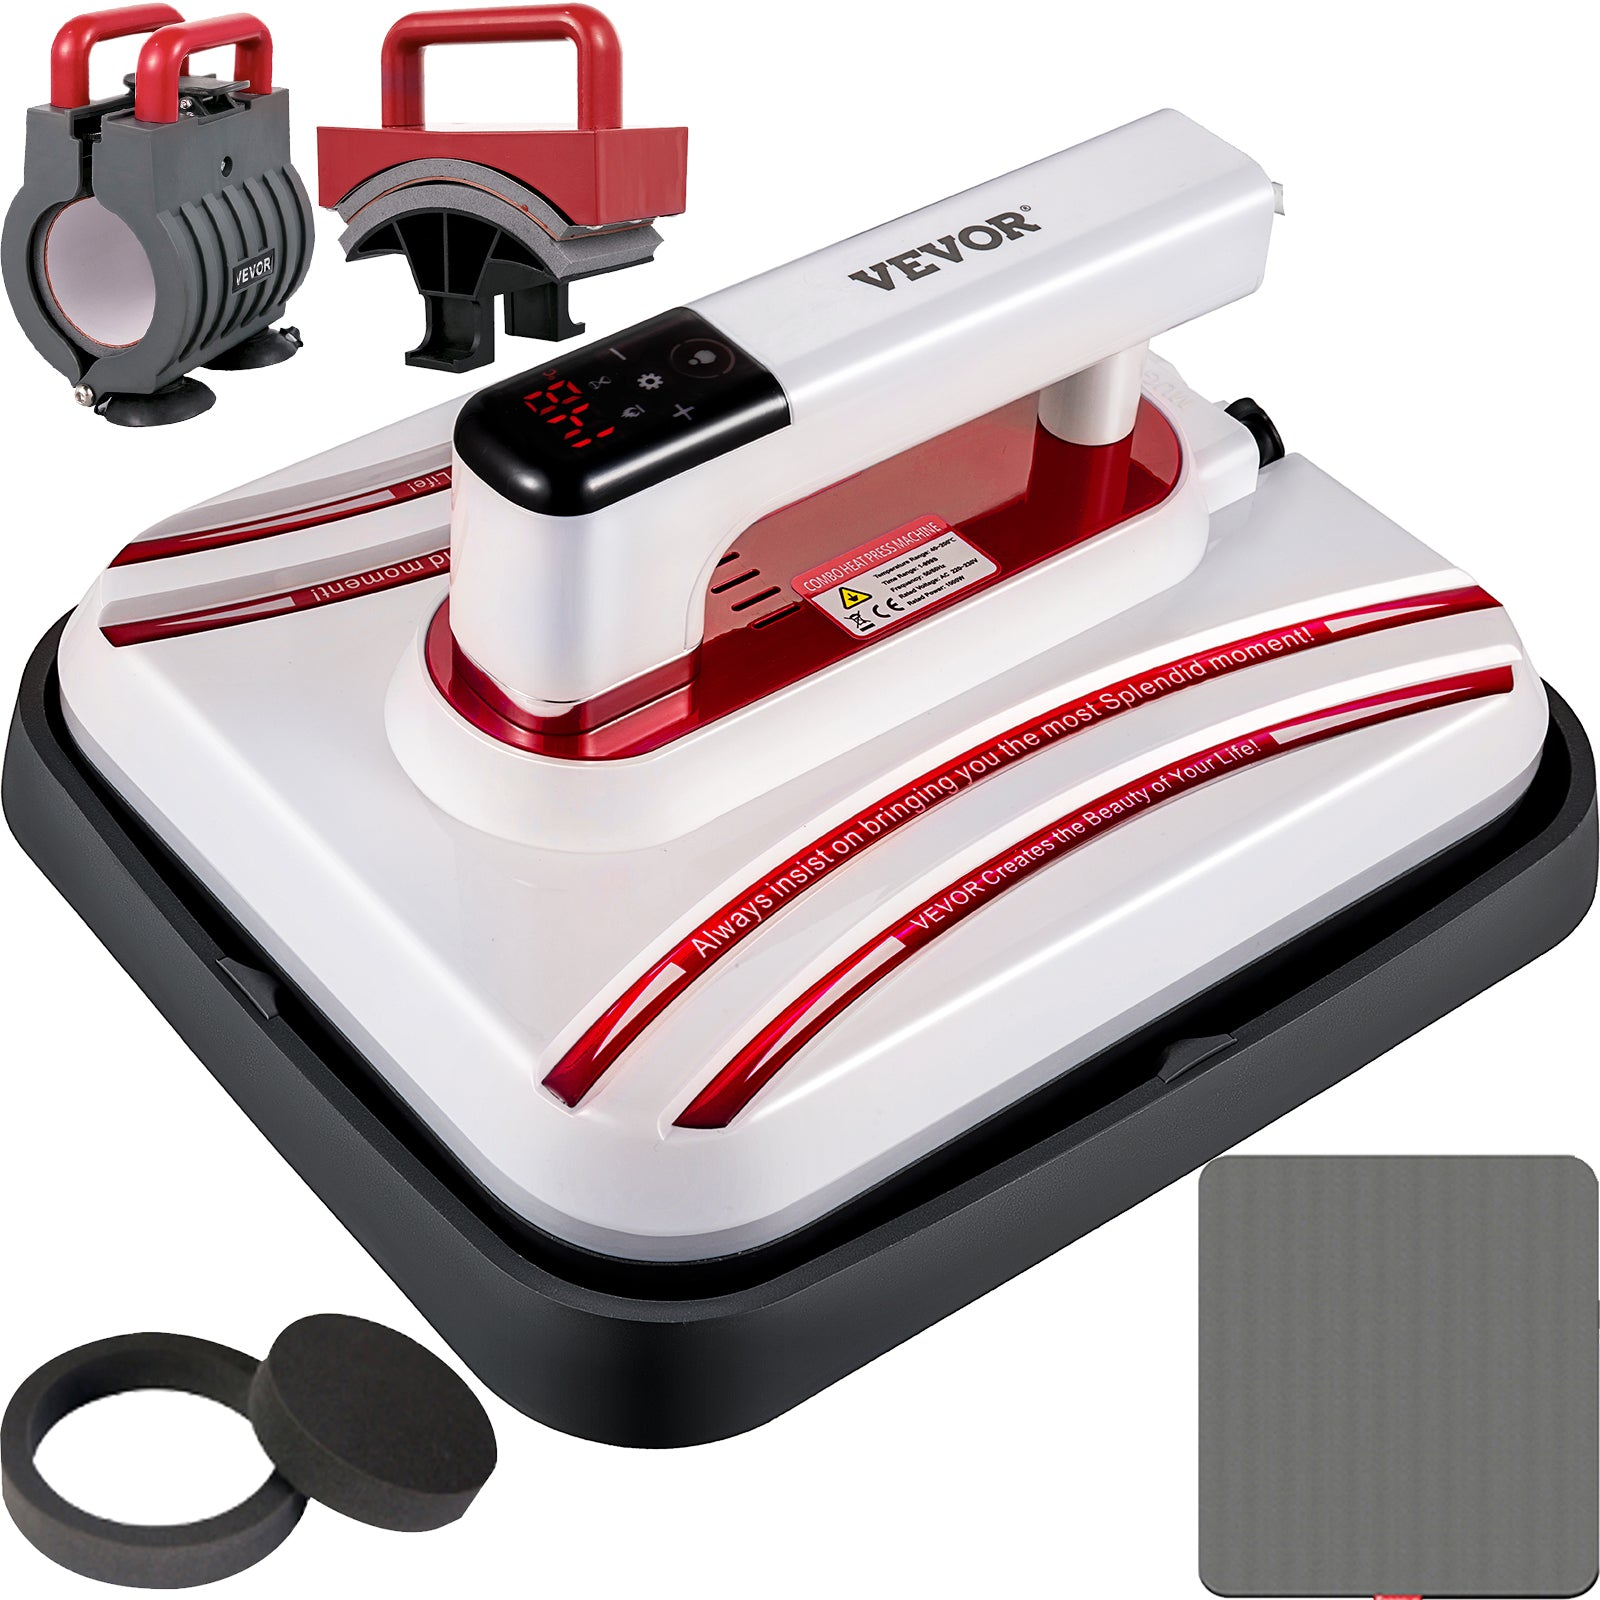 Heat Press Easy Press 10 X 10 Red Portable 3 In 1 Mini Press For Diy T-shirt Mug